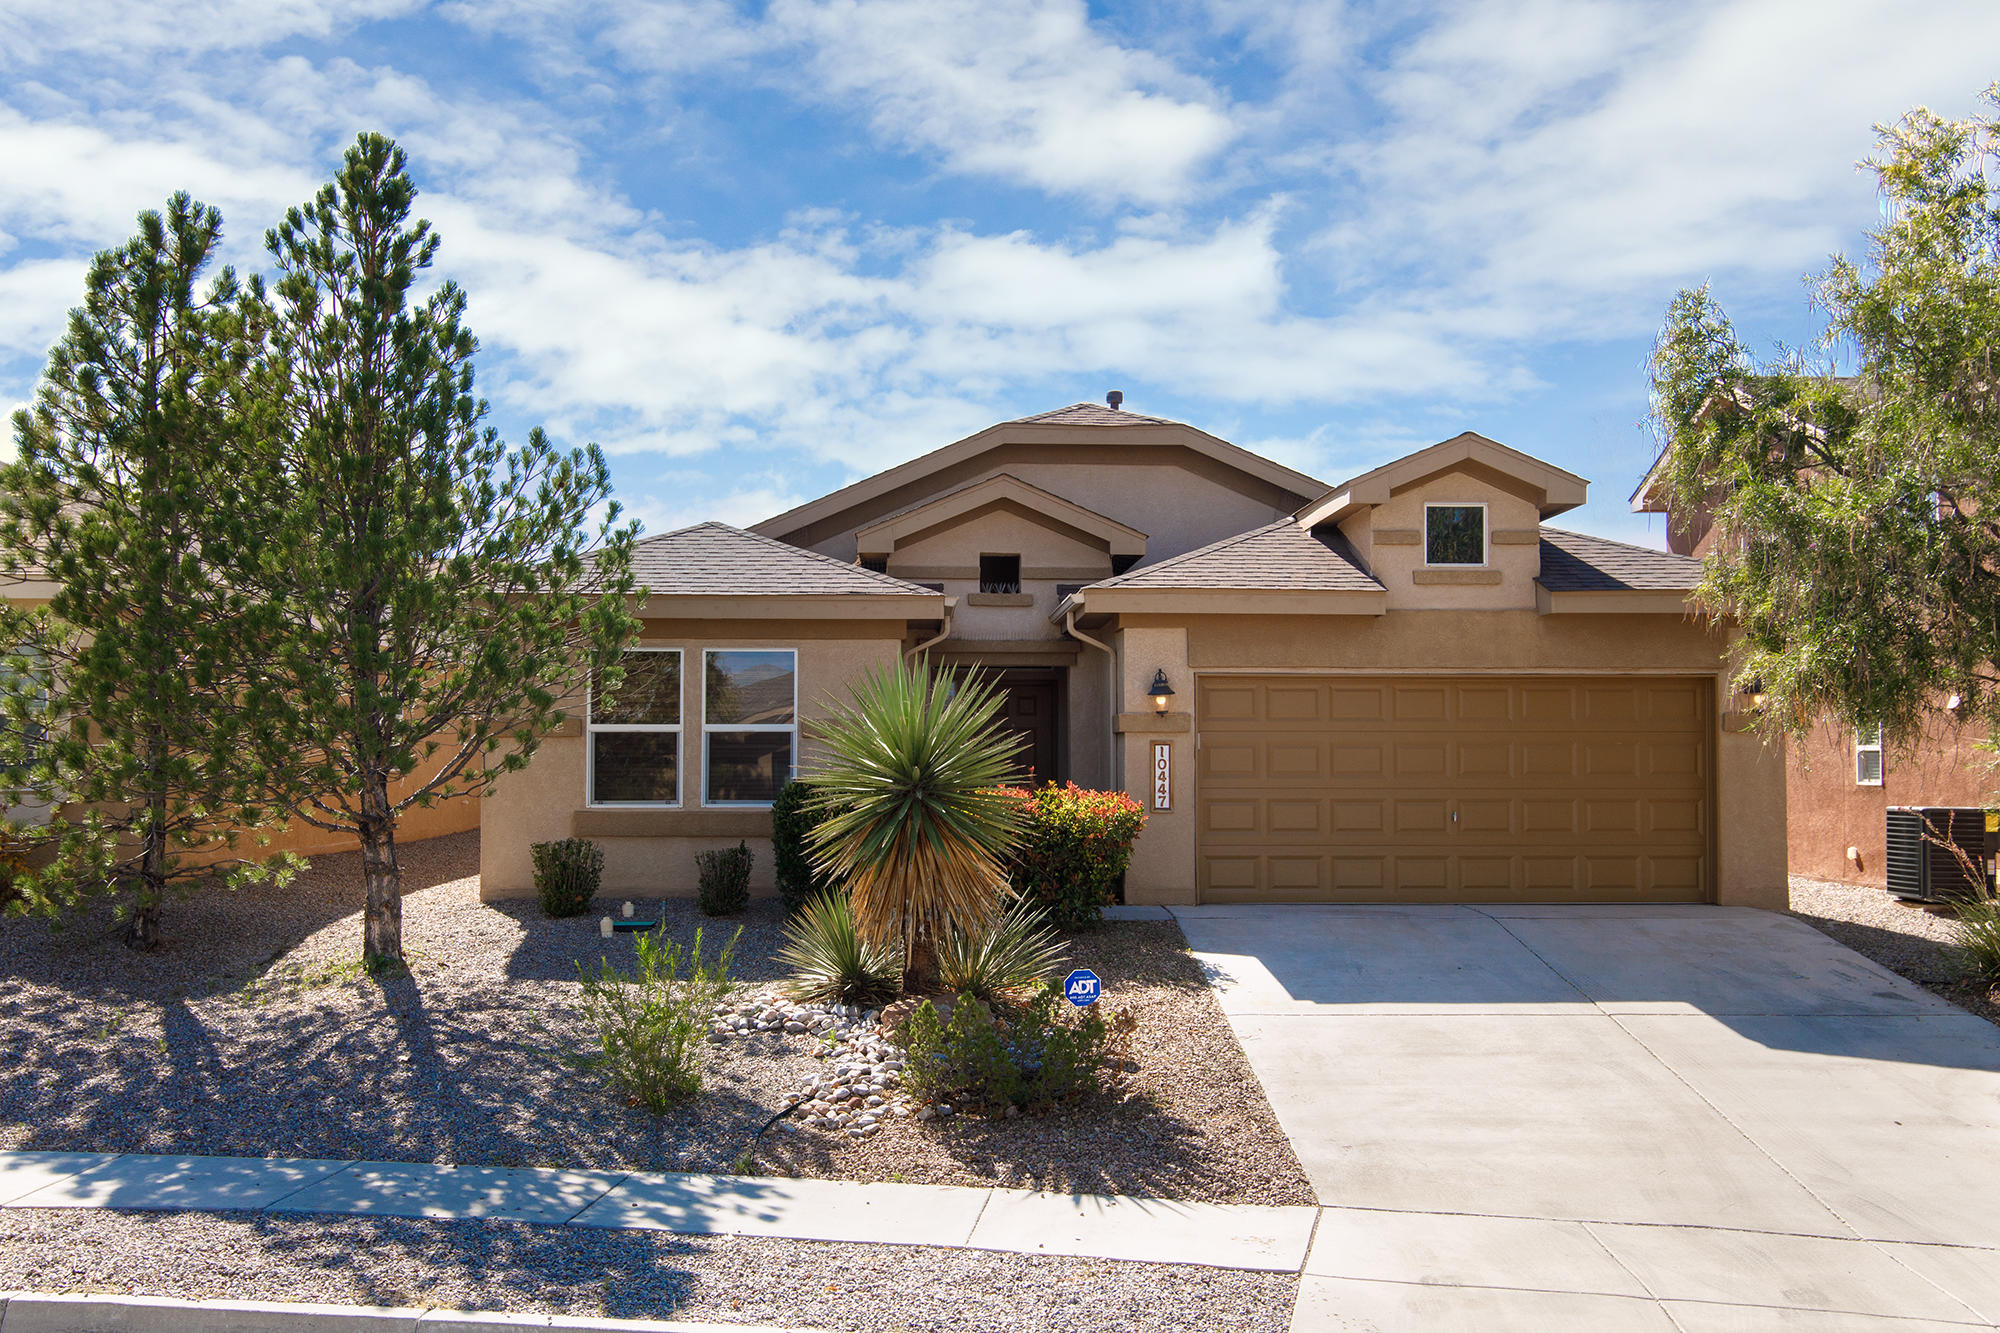 Welcome home to this beauty in Ventana Ranch! This popular Pulte floorplan boasts a lovely flowing entryway that beckons you to explore the rest of your new home! Four spacious bedrooms and two full bathrooms give ample space for the whole family. Brand new carpet and new paint throughout! You'll love the large owner's suite, complete with ensuite bath, garden tub, and separate shower, not to mention the huge walk in closet!  Stainless steel appliances and Cherry wood cabinets adorn the open concept kitchen! Great space for entertaining! Xeriscaped front and back yards help with low maintenance. Close to shopping and other conveniences, yet far enough away to enjoy the peace of the desert. Hurry, this won't last long!